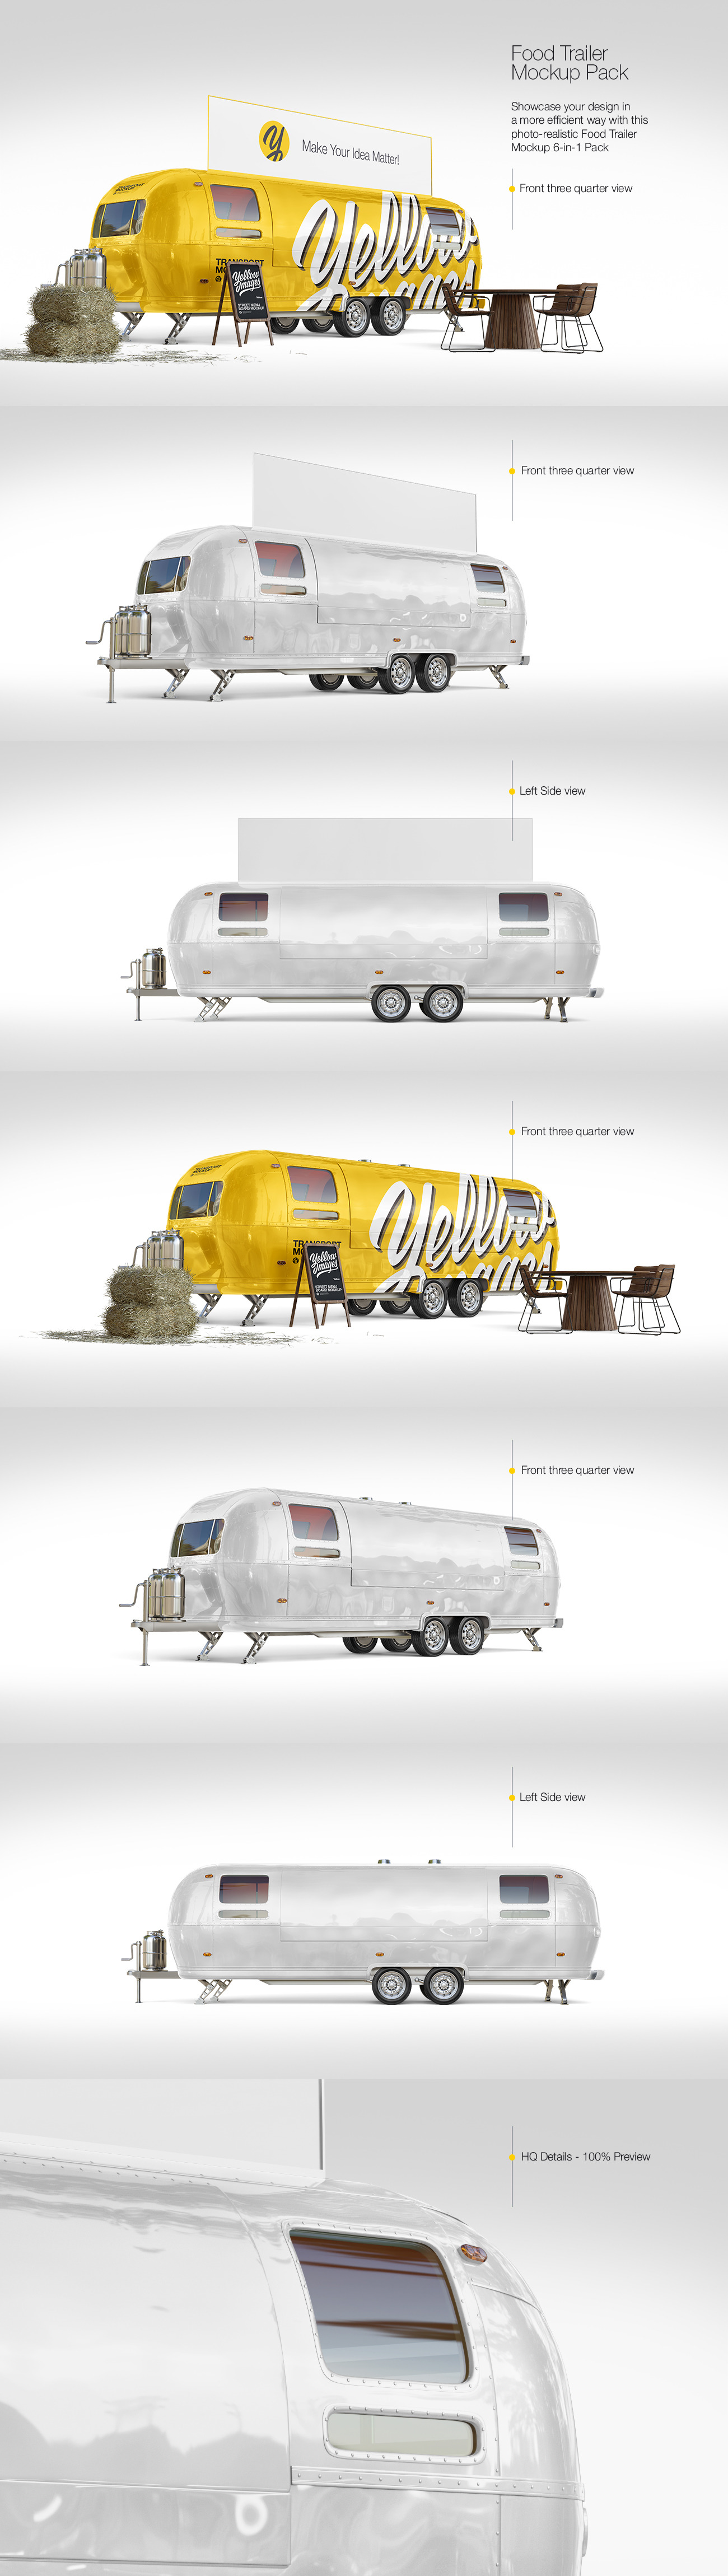 Food Trailer Mockup Pack